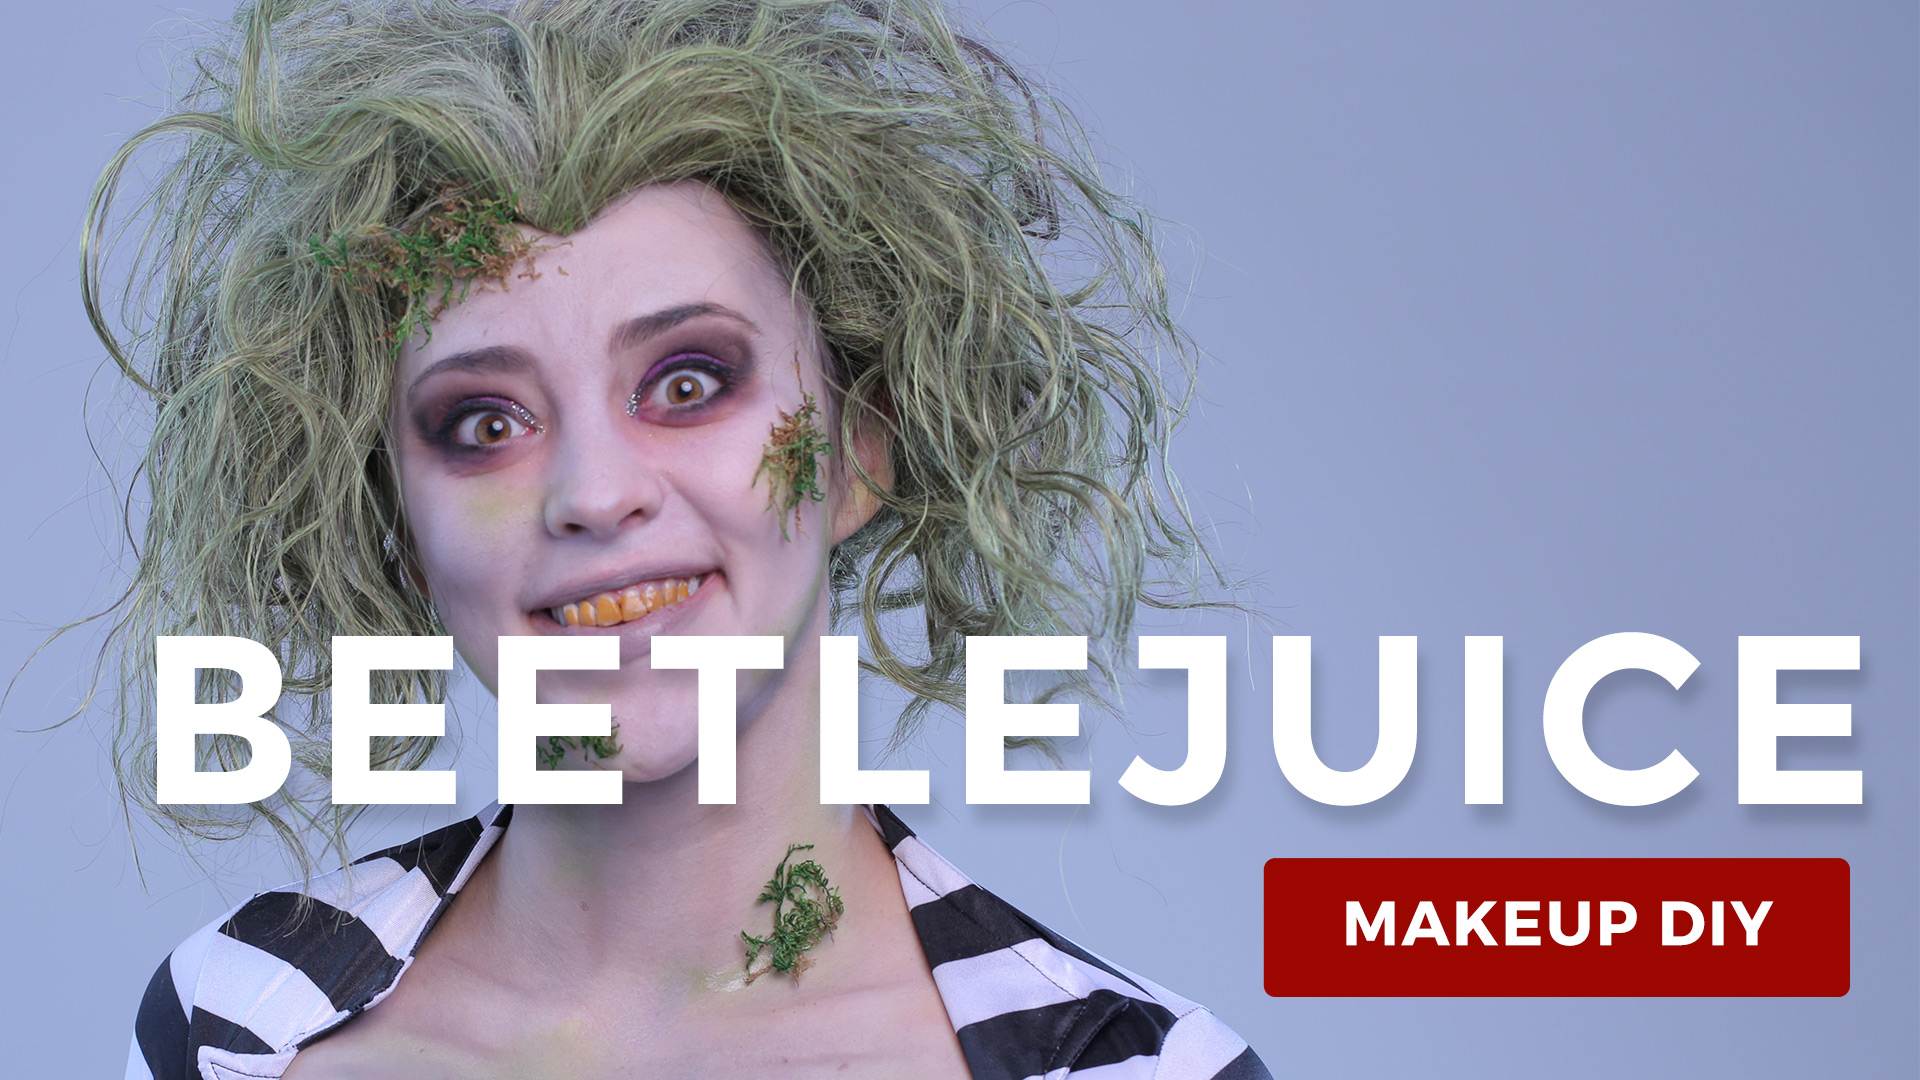 beetlejuice makeup tutorial - halloween costumes blog